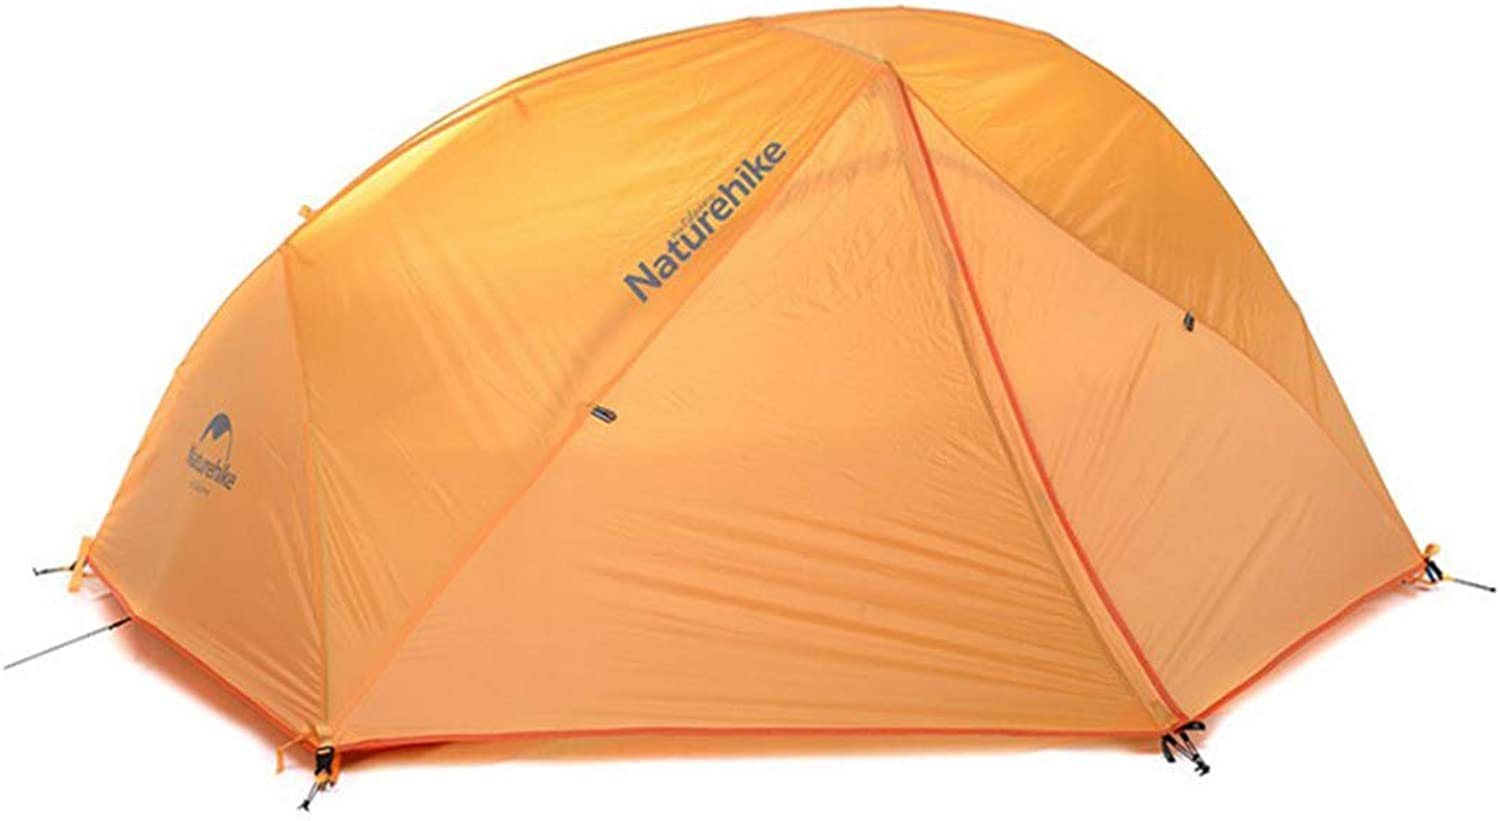 Sugoishop Silica Gel Double Decker Light Rain Proof Camping Tent